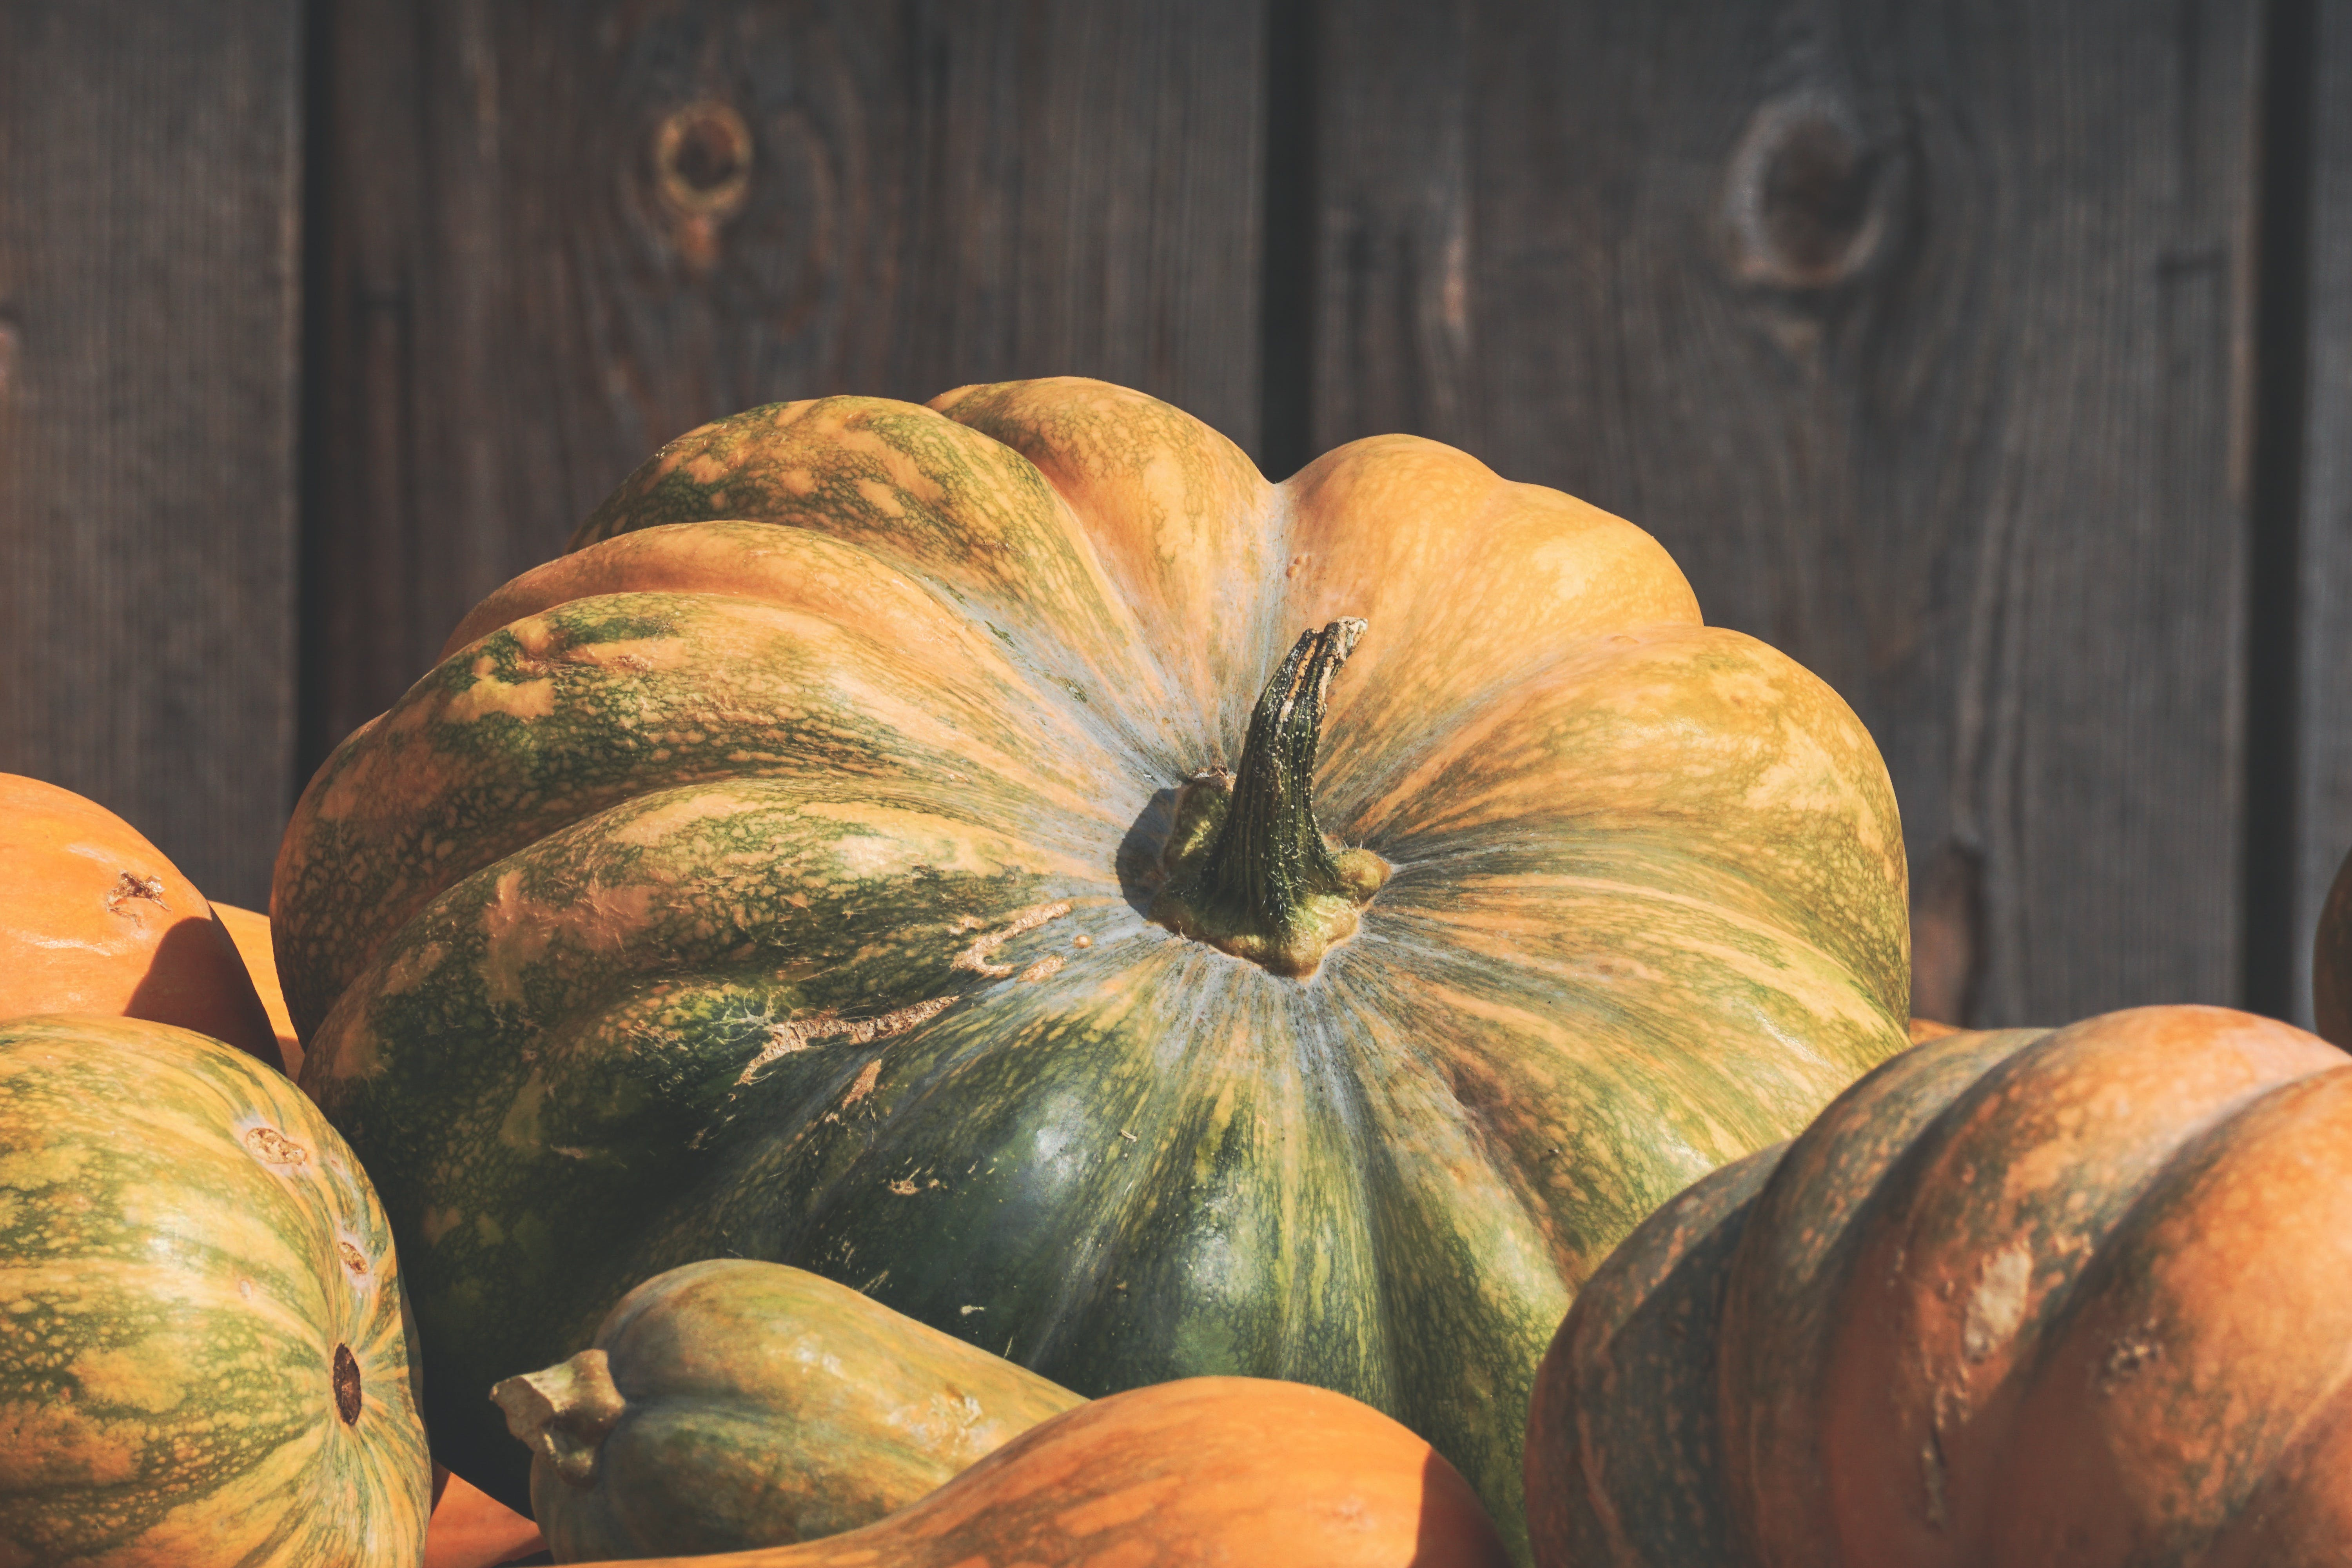 Close-up Photo of Orange and Green Squash